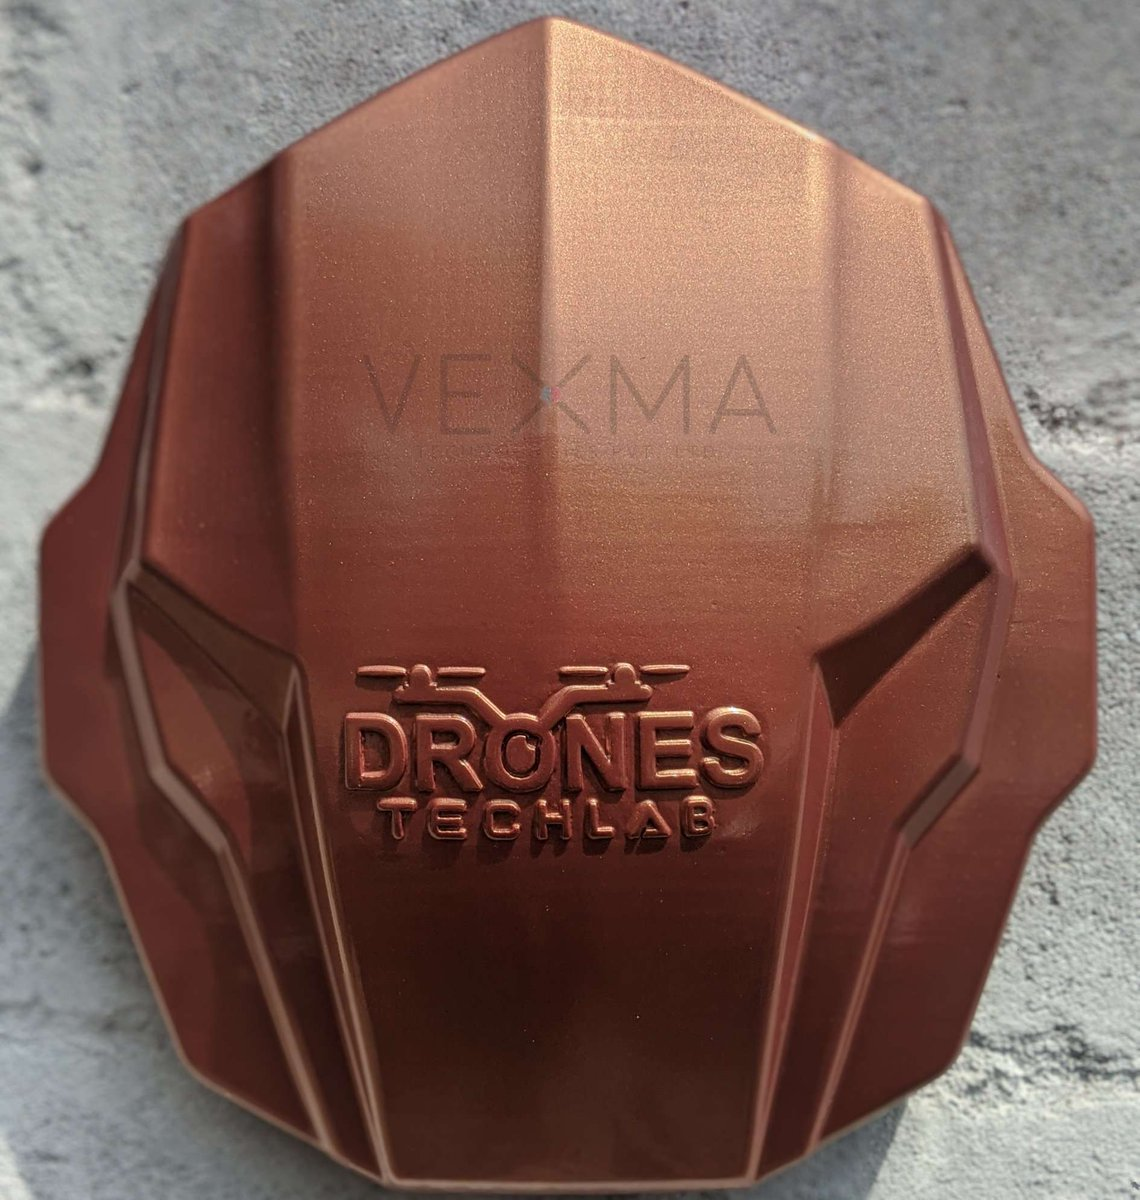 Check out the finished version after paint job for the previous post. We have in-house finishing services with a dedicated paint room to accomplish such kind of job work. P.s we feel our printer is great for automotive parts.  #3dprinted #drone #aerospace #dronepart #vexmatech